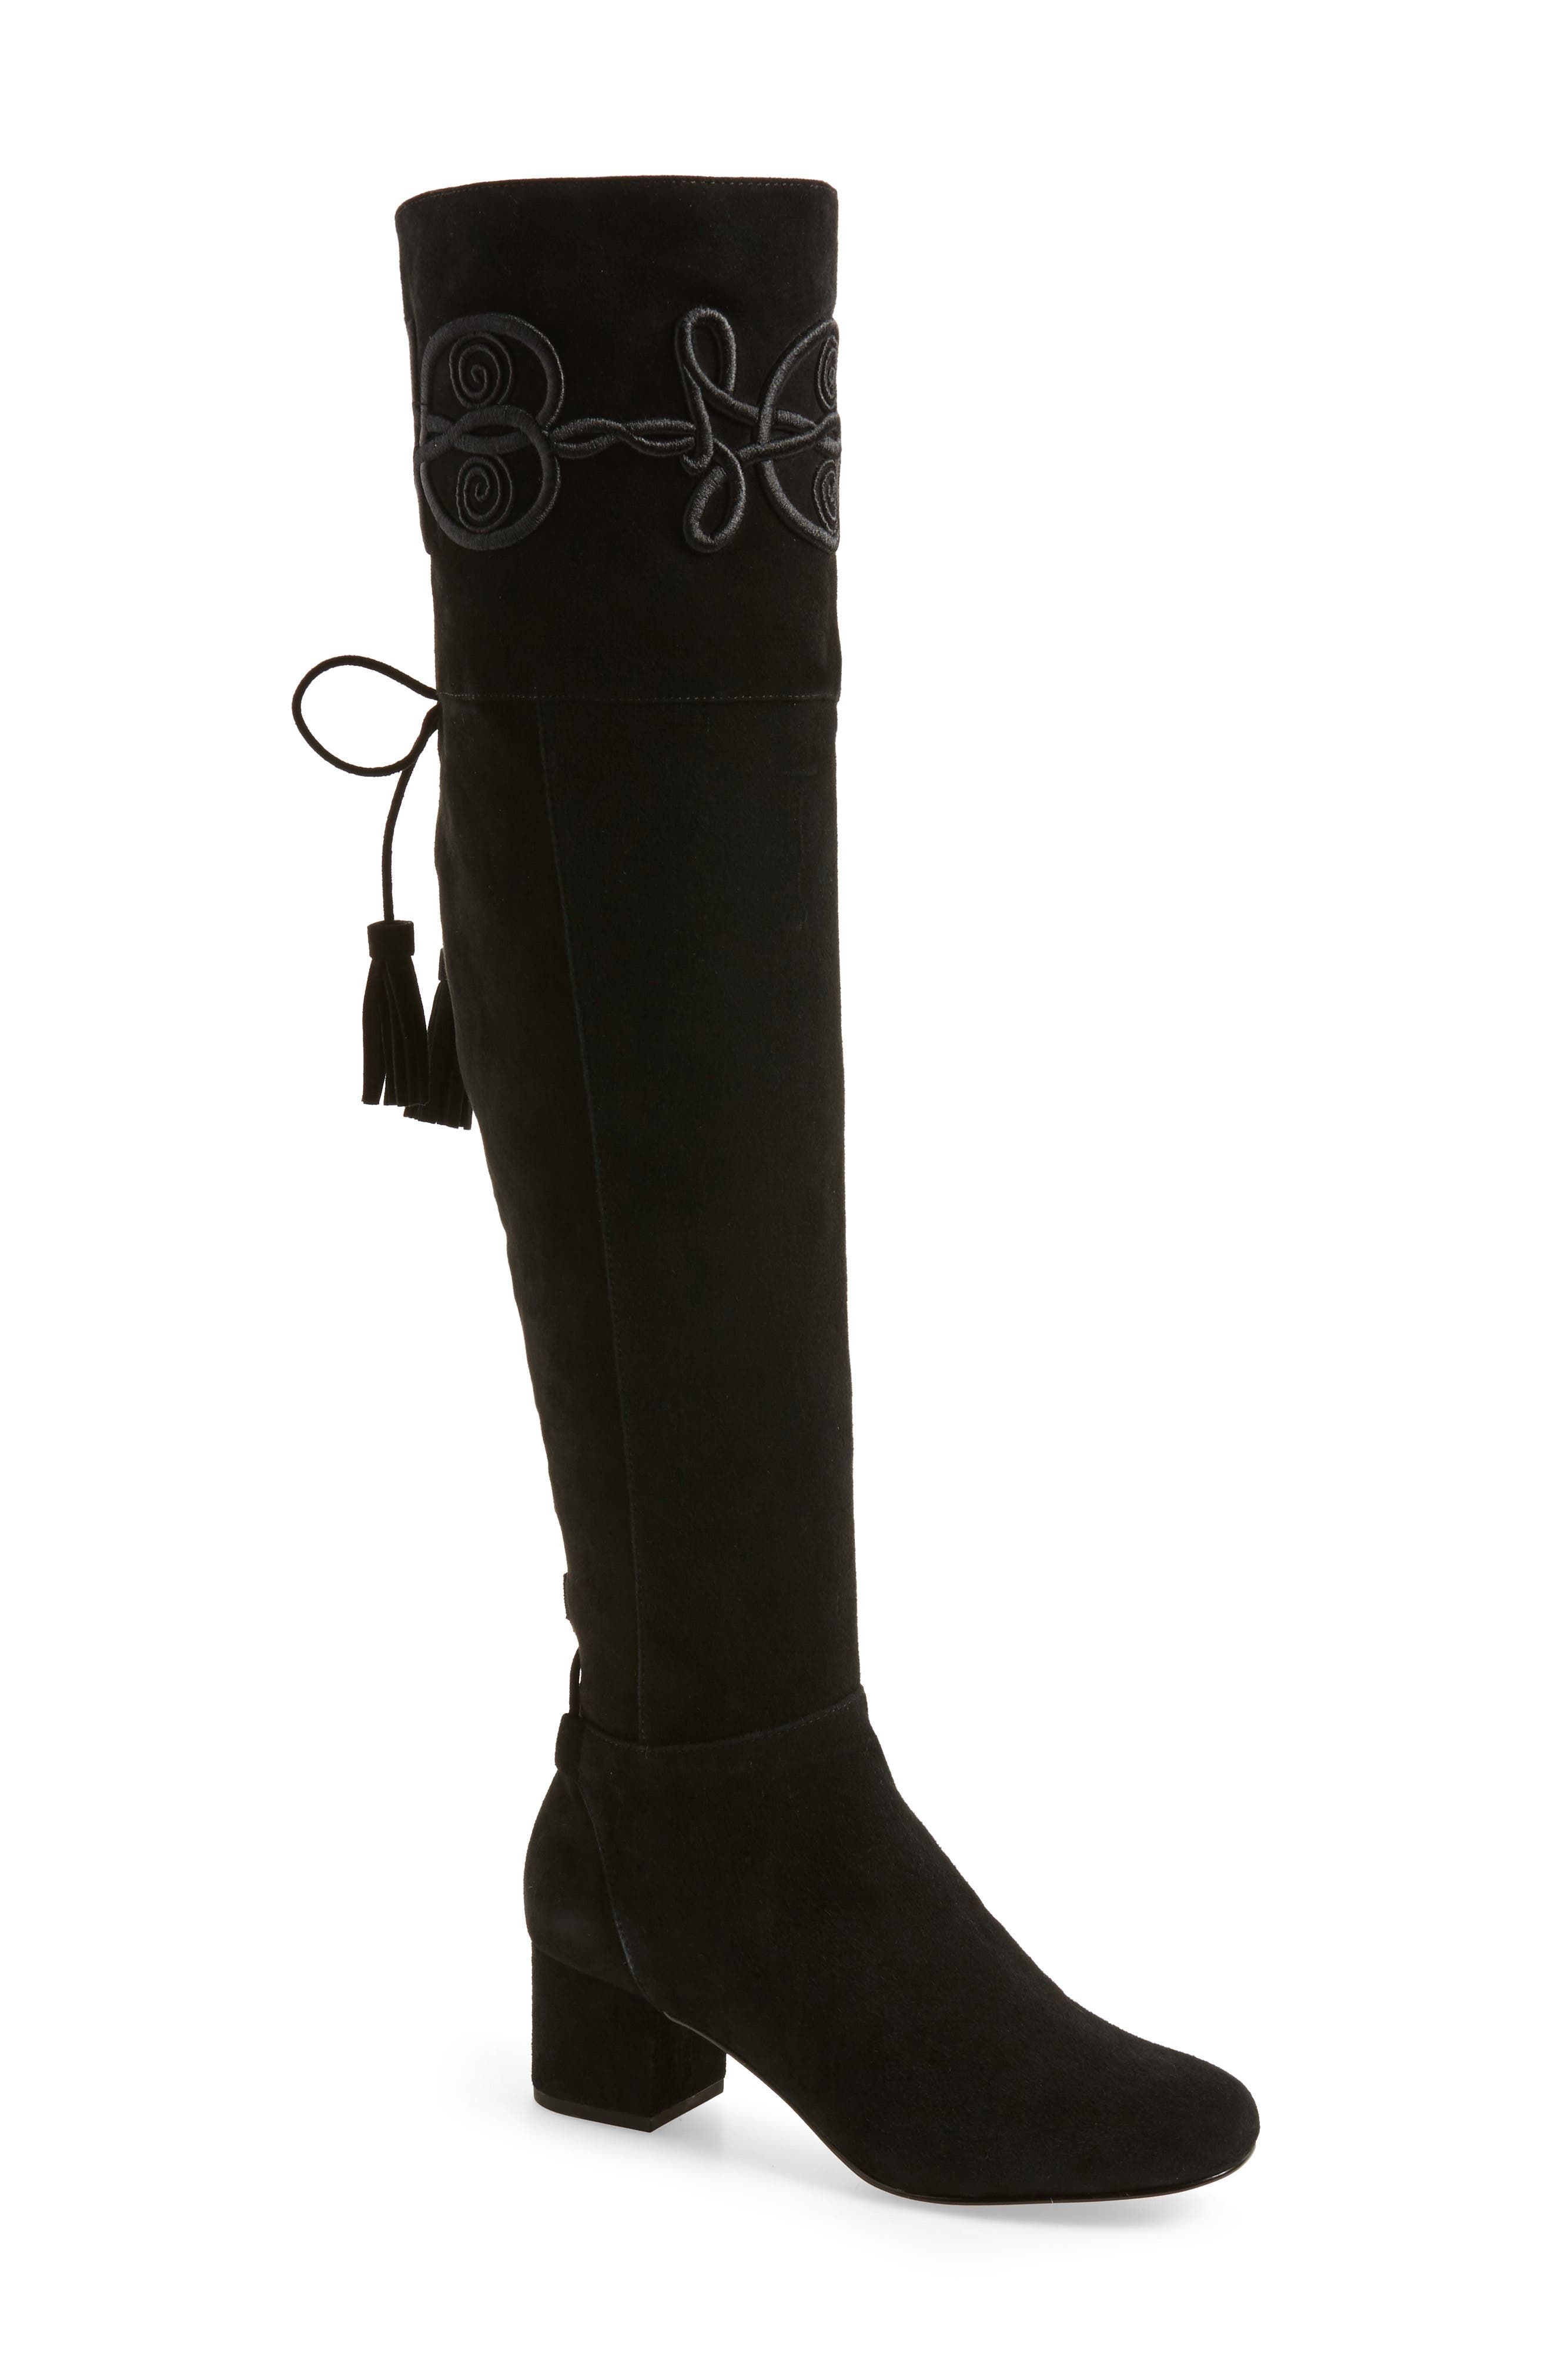 Alternate Image 1 Selected - Rebecca Minkoff Shiloh Over the Knee Boot (Women) (Narrow Calf)